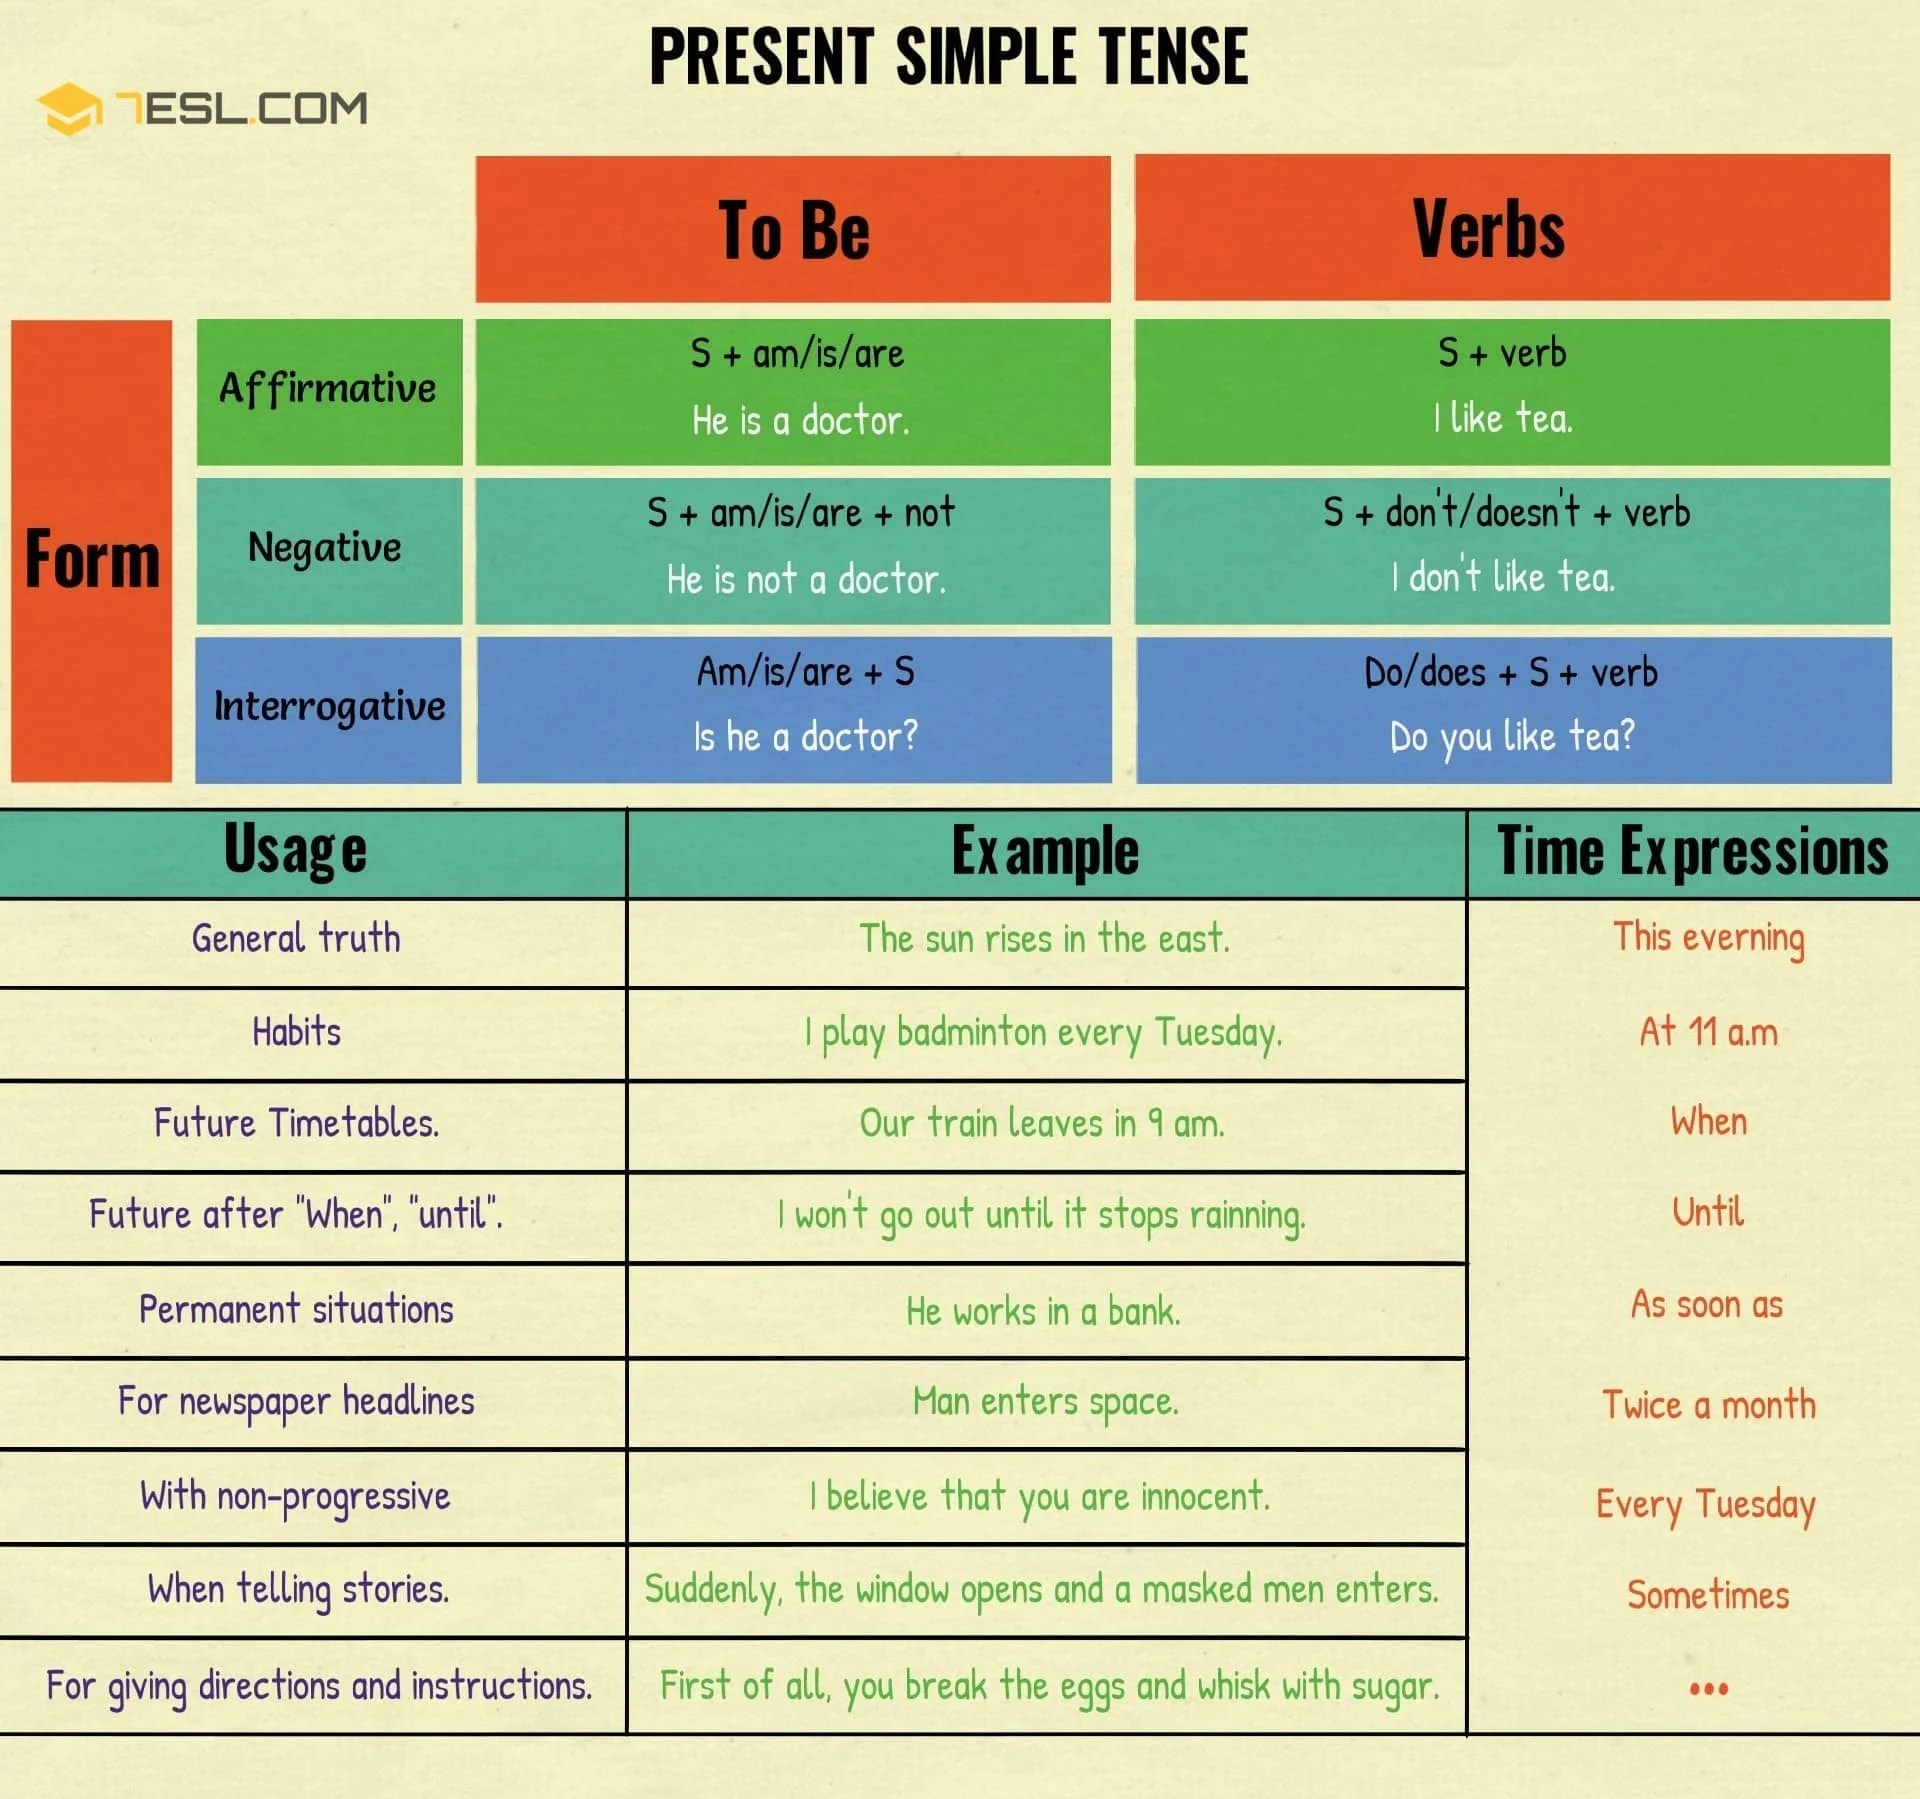 Present Simple Tense Grammar Rules And Examples